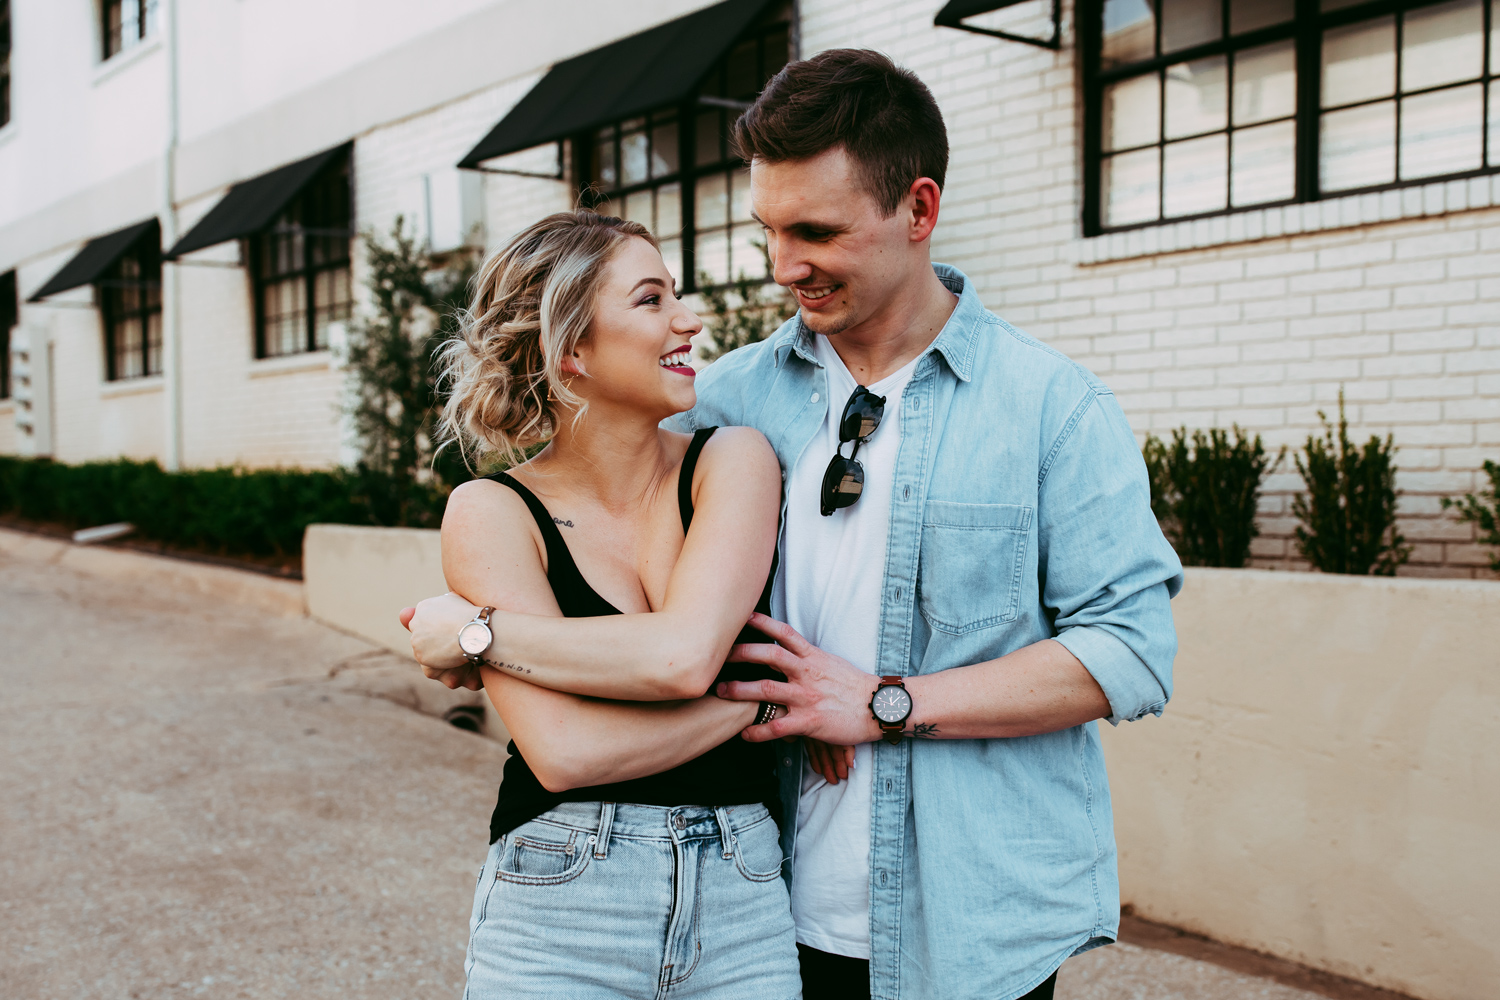 Cute urban couple dancing and embracing in an alleyway in the Paseo District of Oklahoma City by Amanda Lynn Weddings.